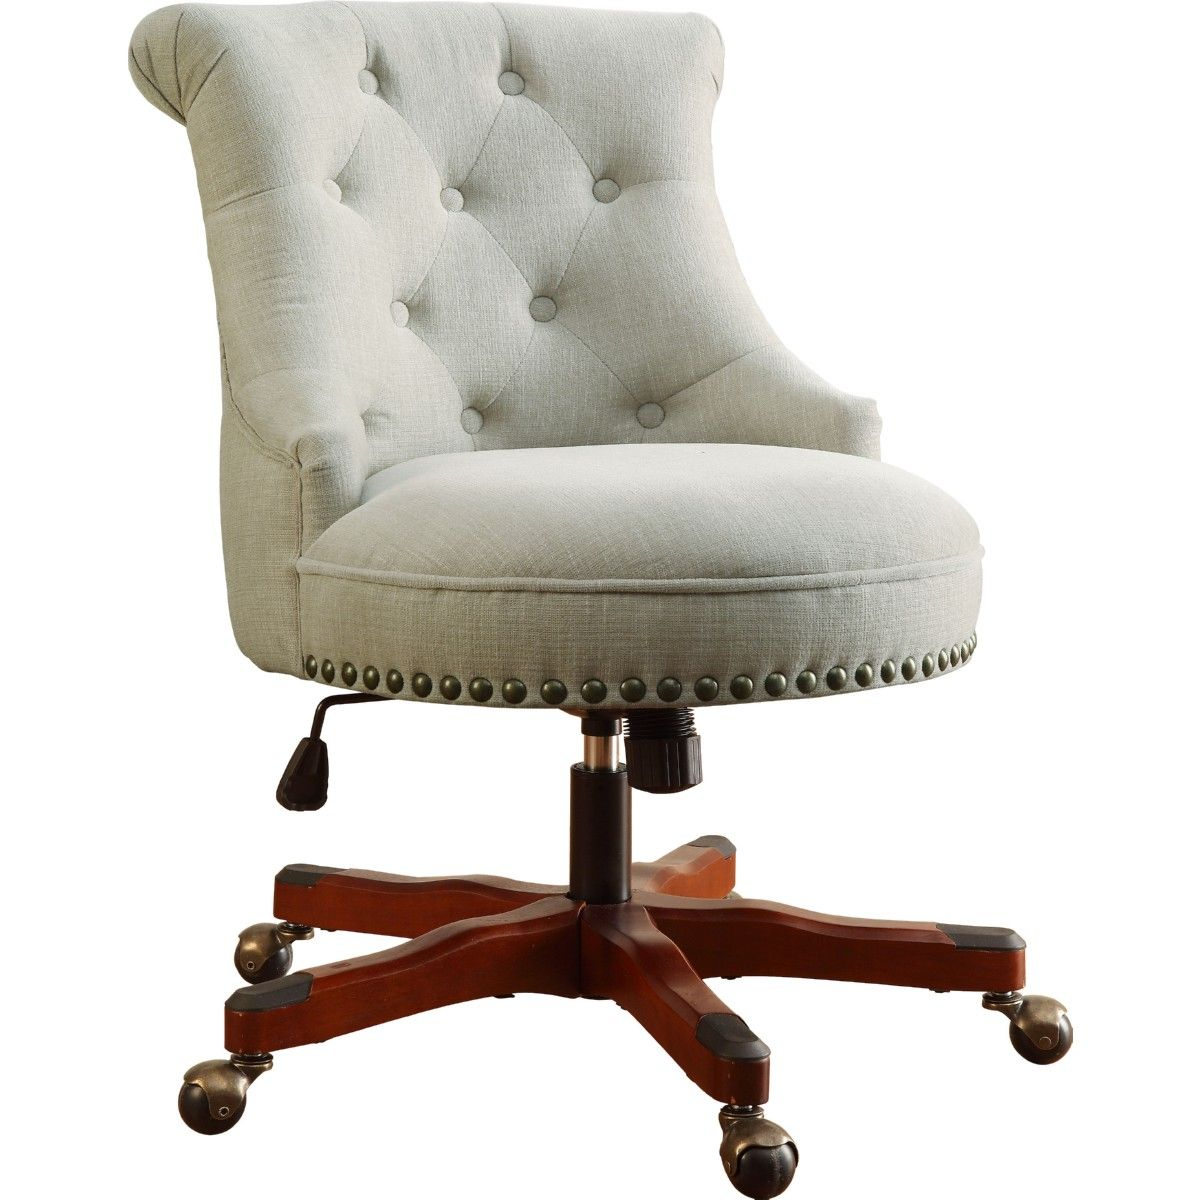 linon sinclair office chair in tufted natural fabric w/ dark